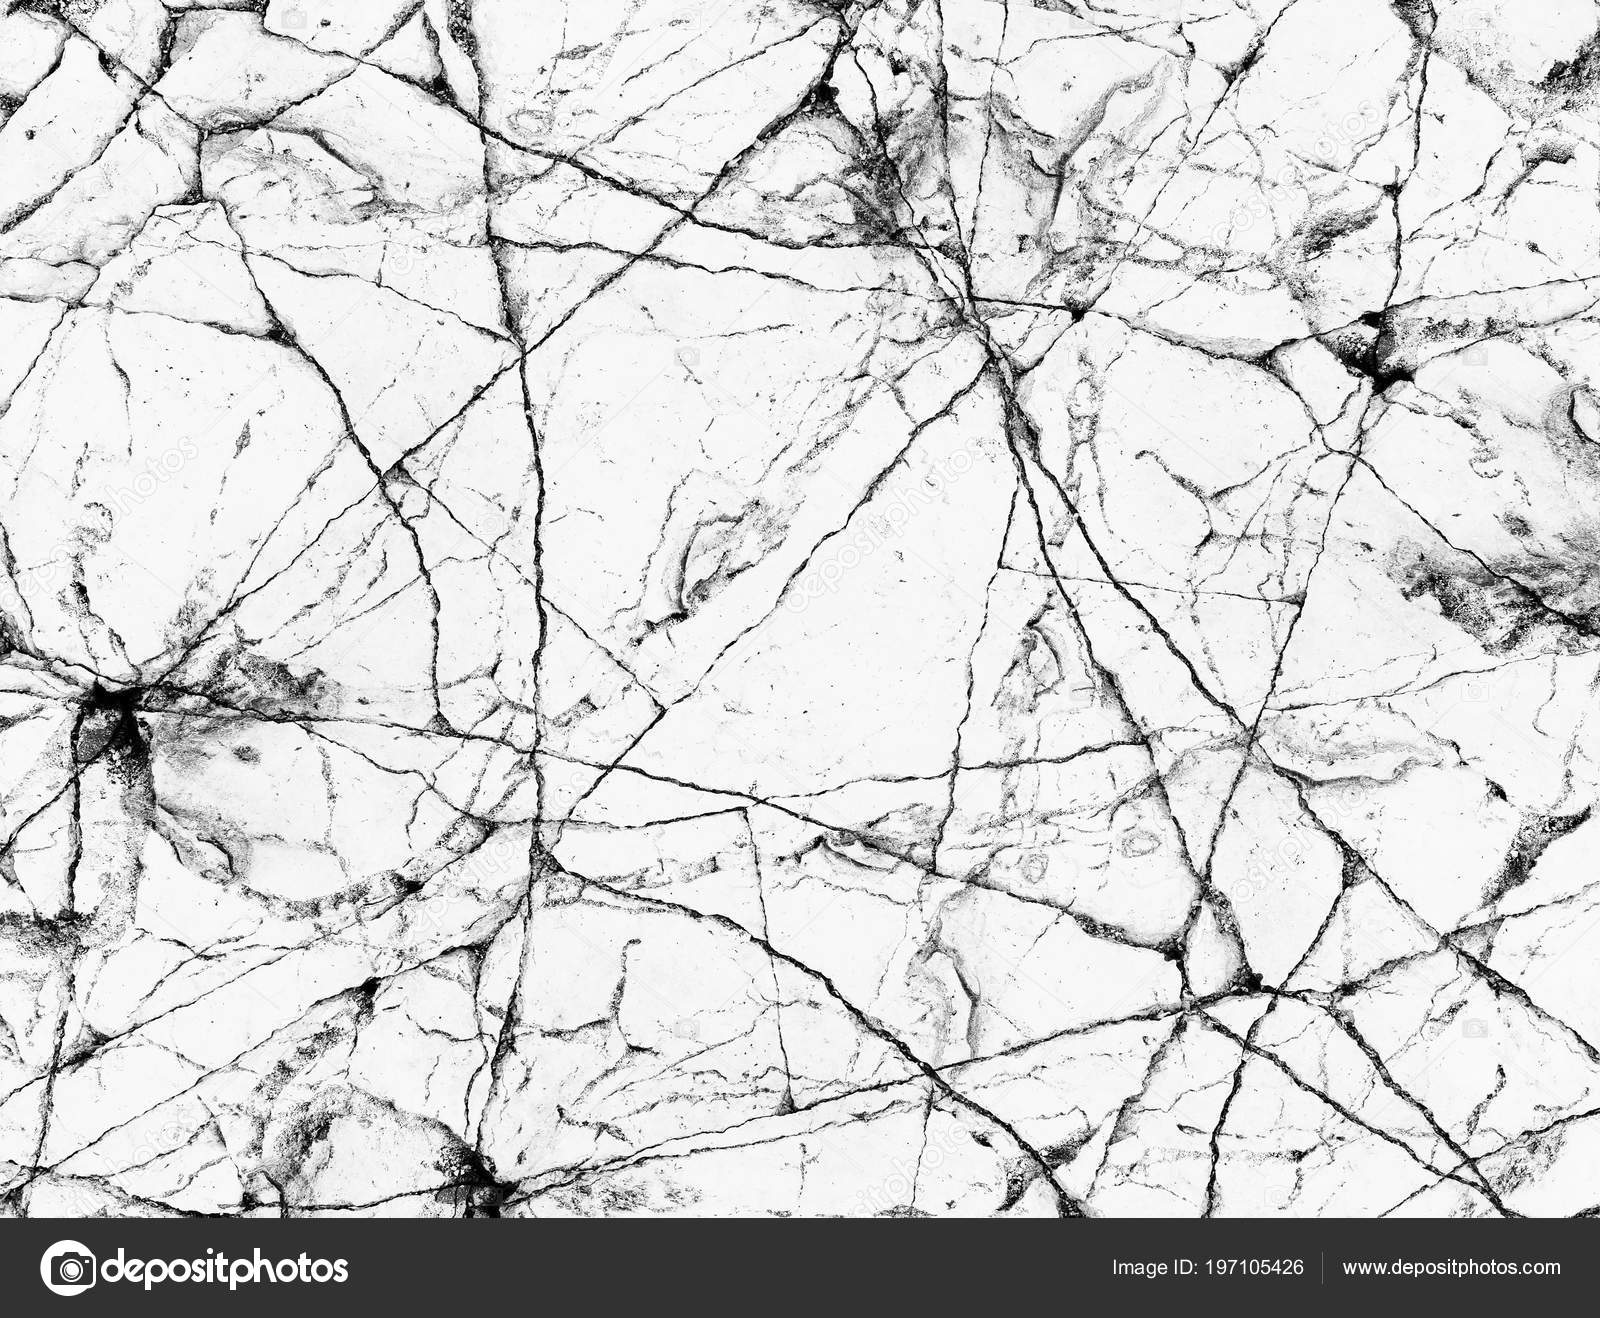 Abstract Natural Black White Gray Cracked Marble Background Design High Stock Photo C Tawanlubfah 197105426